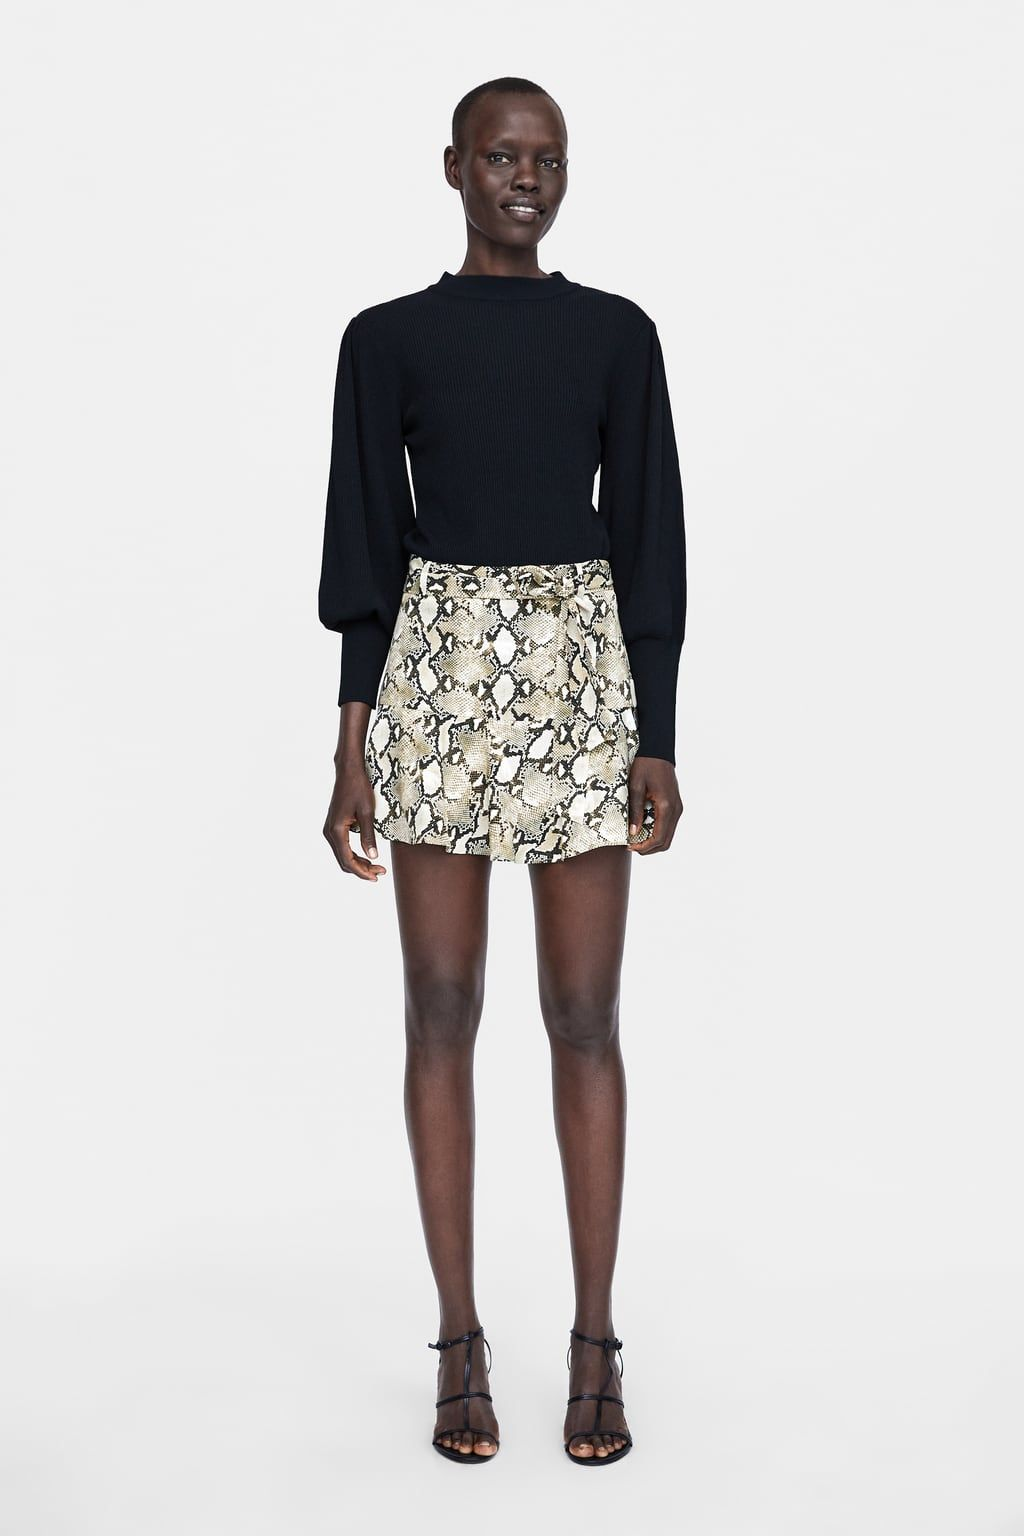 492153f2c Image 1 of ANIMAL PRINT SHORTS from Zara   Fashion   outfits   Ropa ...